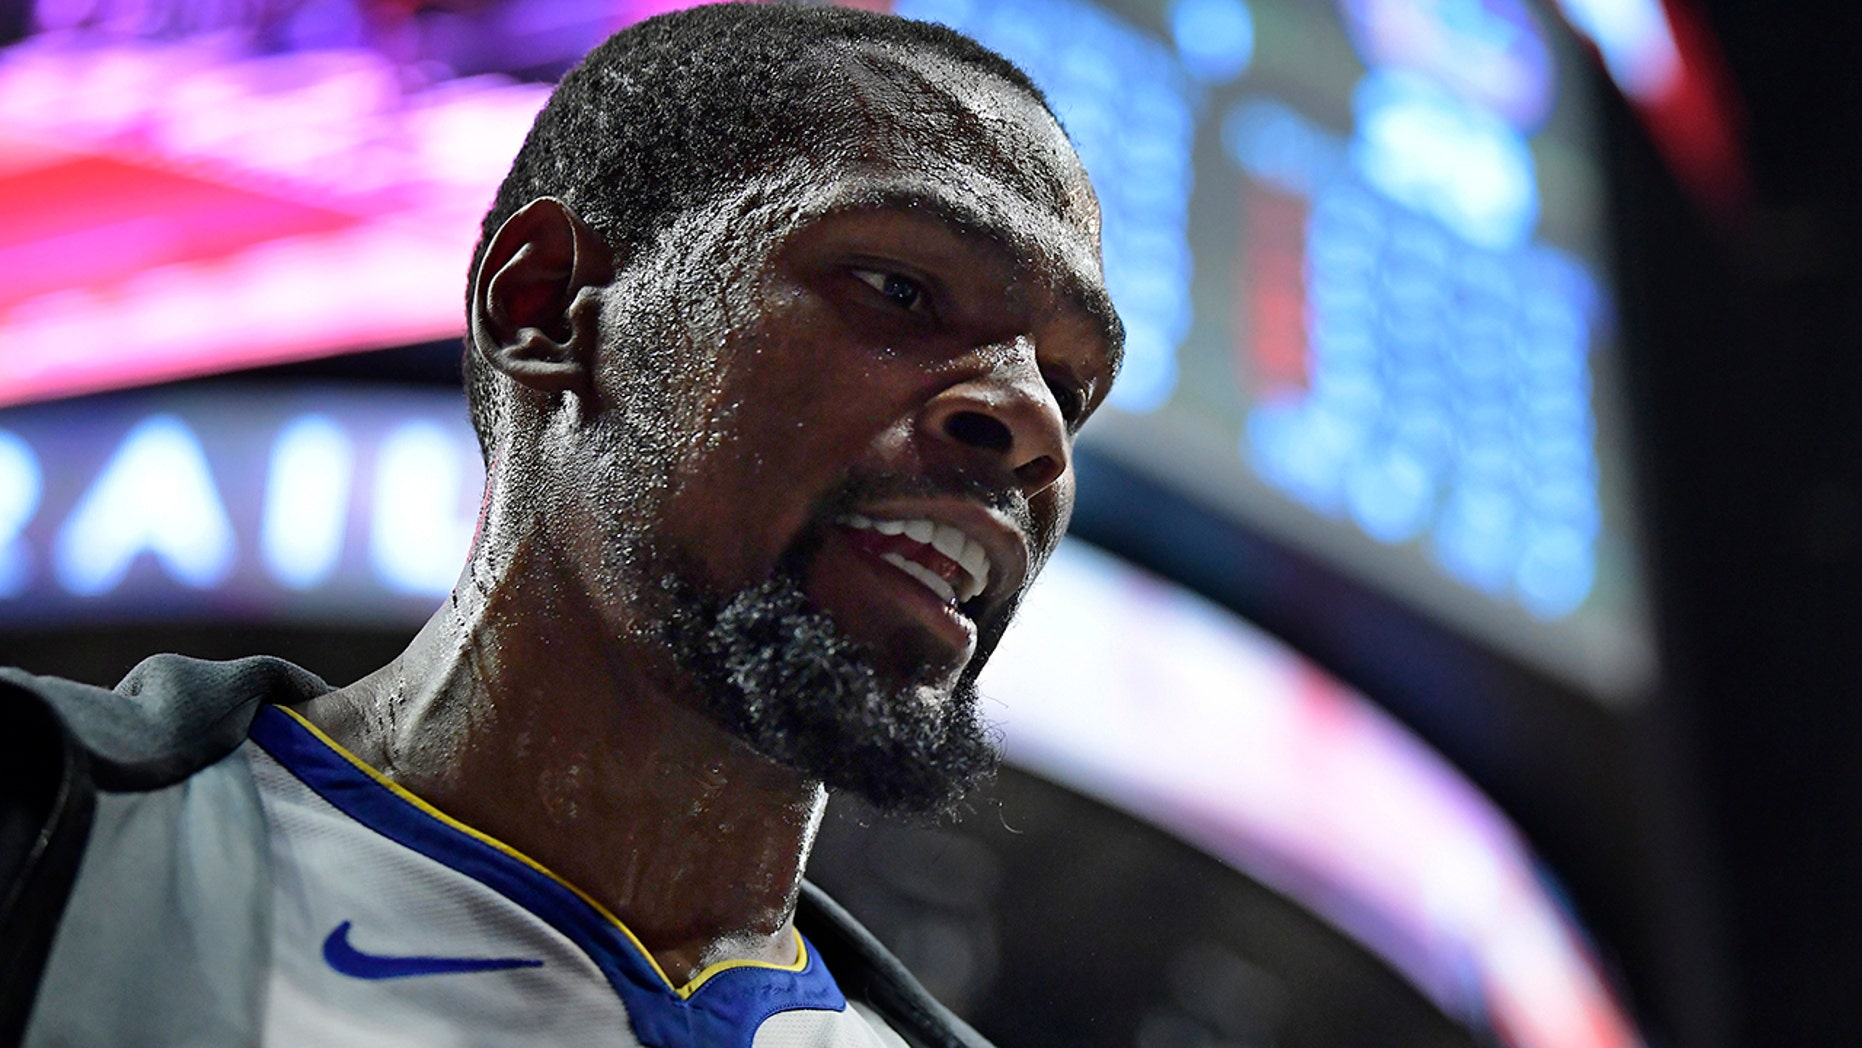 Golden State Warriors forward Kevin Durant paces around the bench during the first half in Game 3 of the team's first-round NBA basketball playoff series against the Los Angeles Clippers on Thursday, April 18, 2019, in Los Angeles. (AP Photo/Mark J. Terrill)